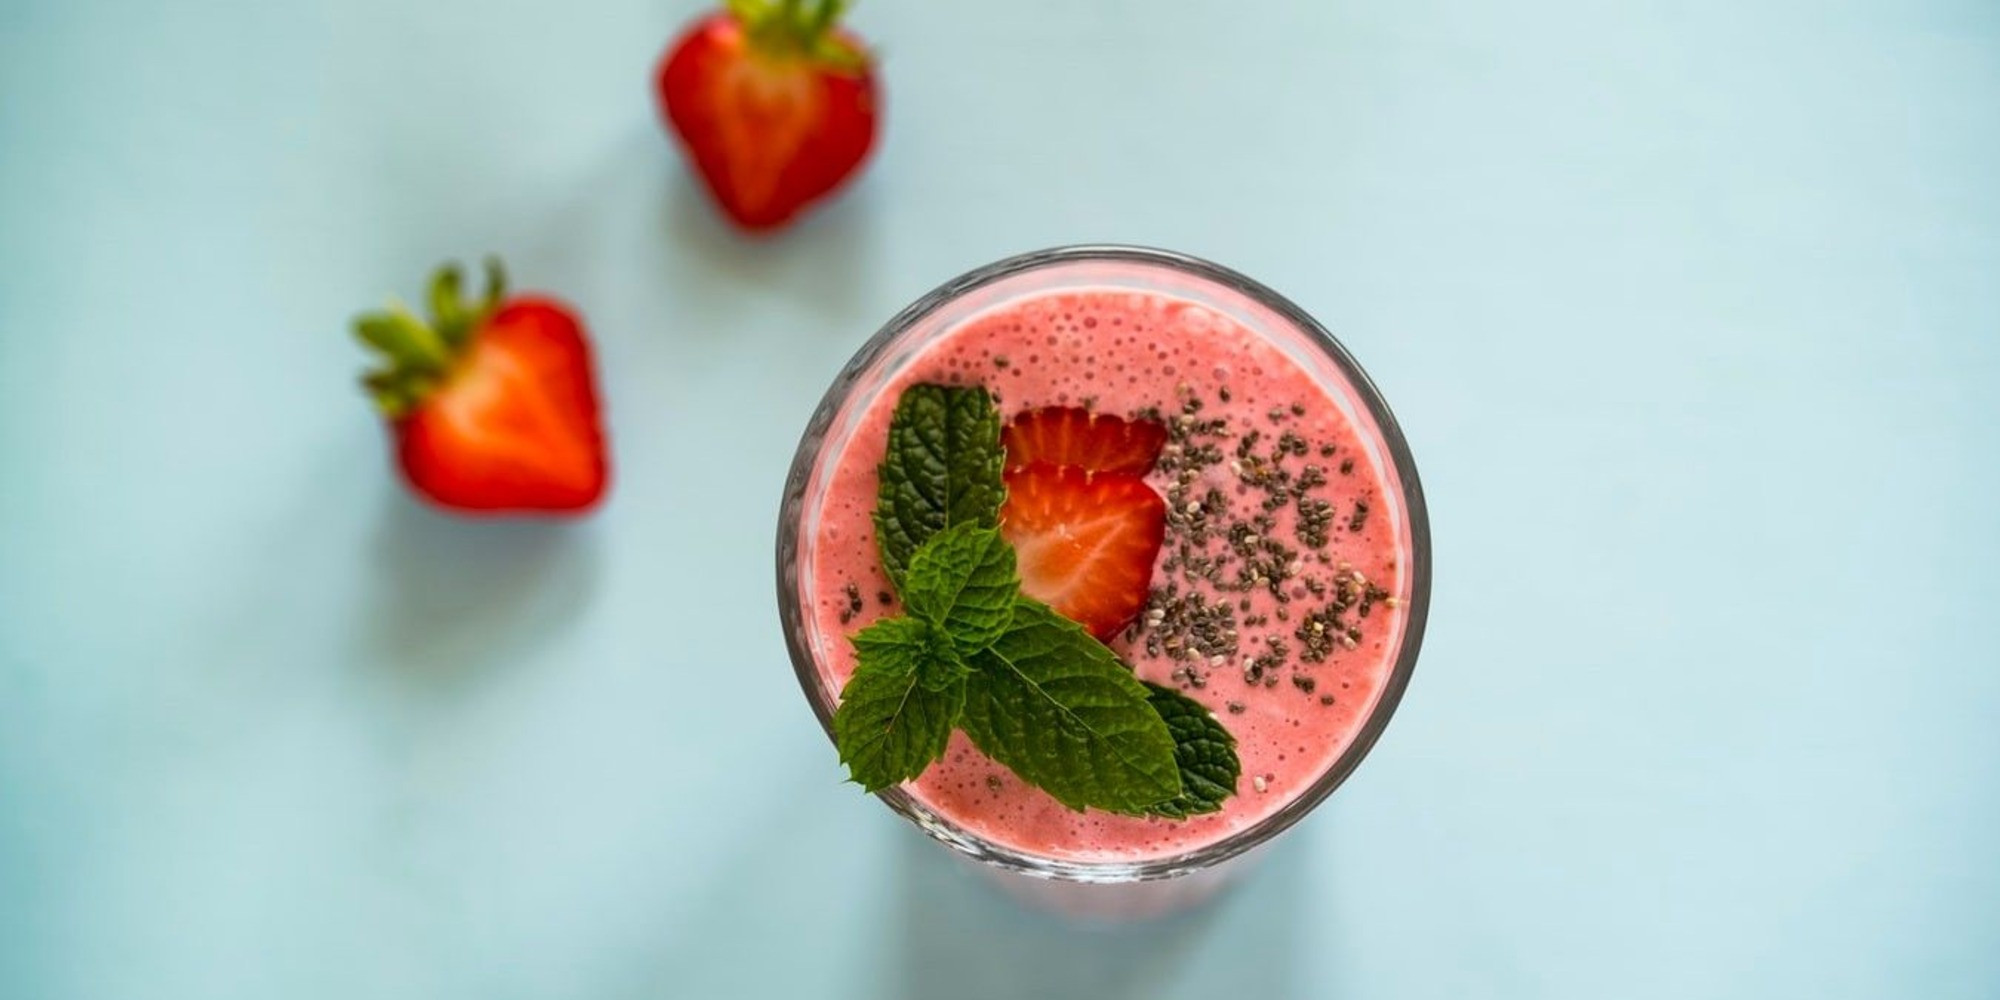 4 Smoothie Recipes To Get You Ready For Spring